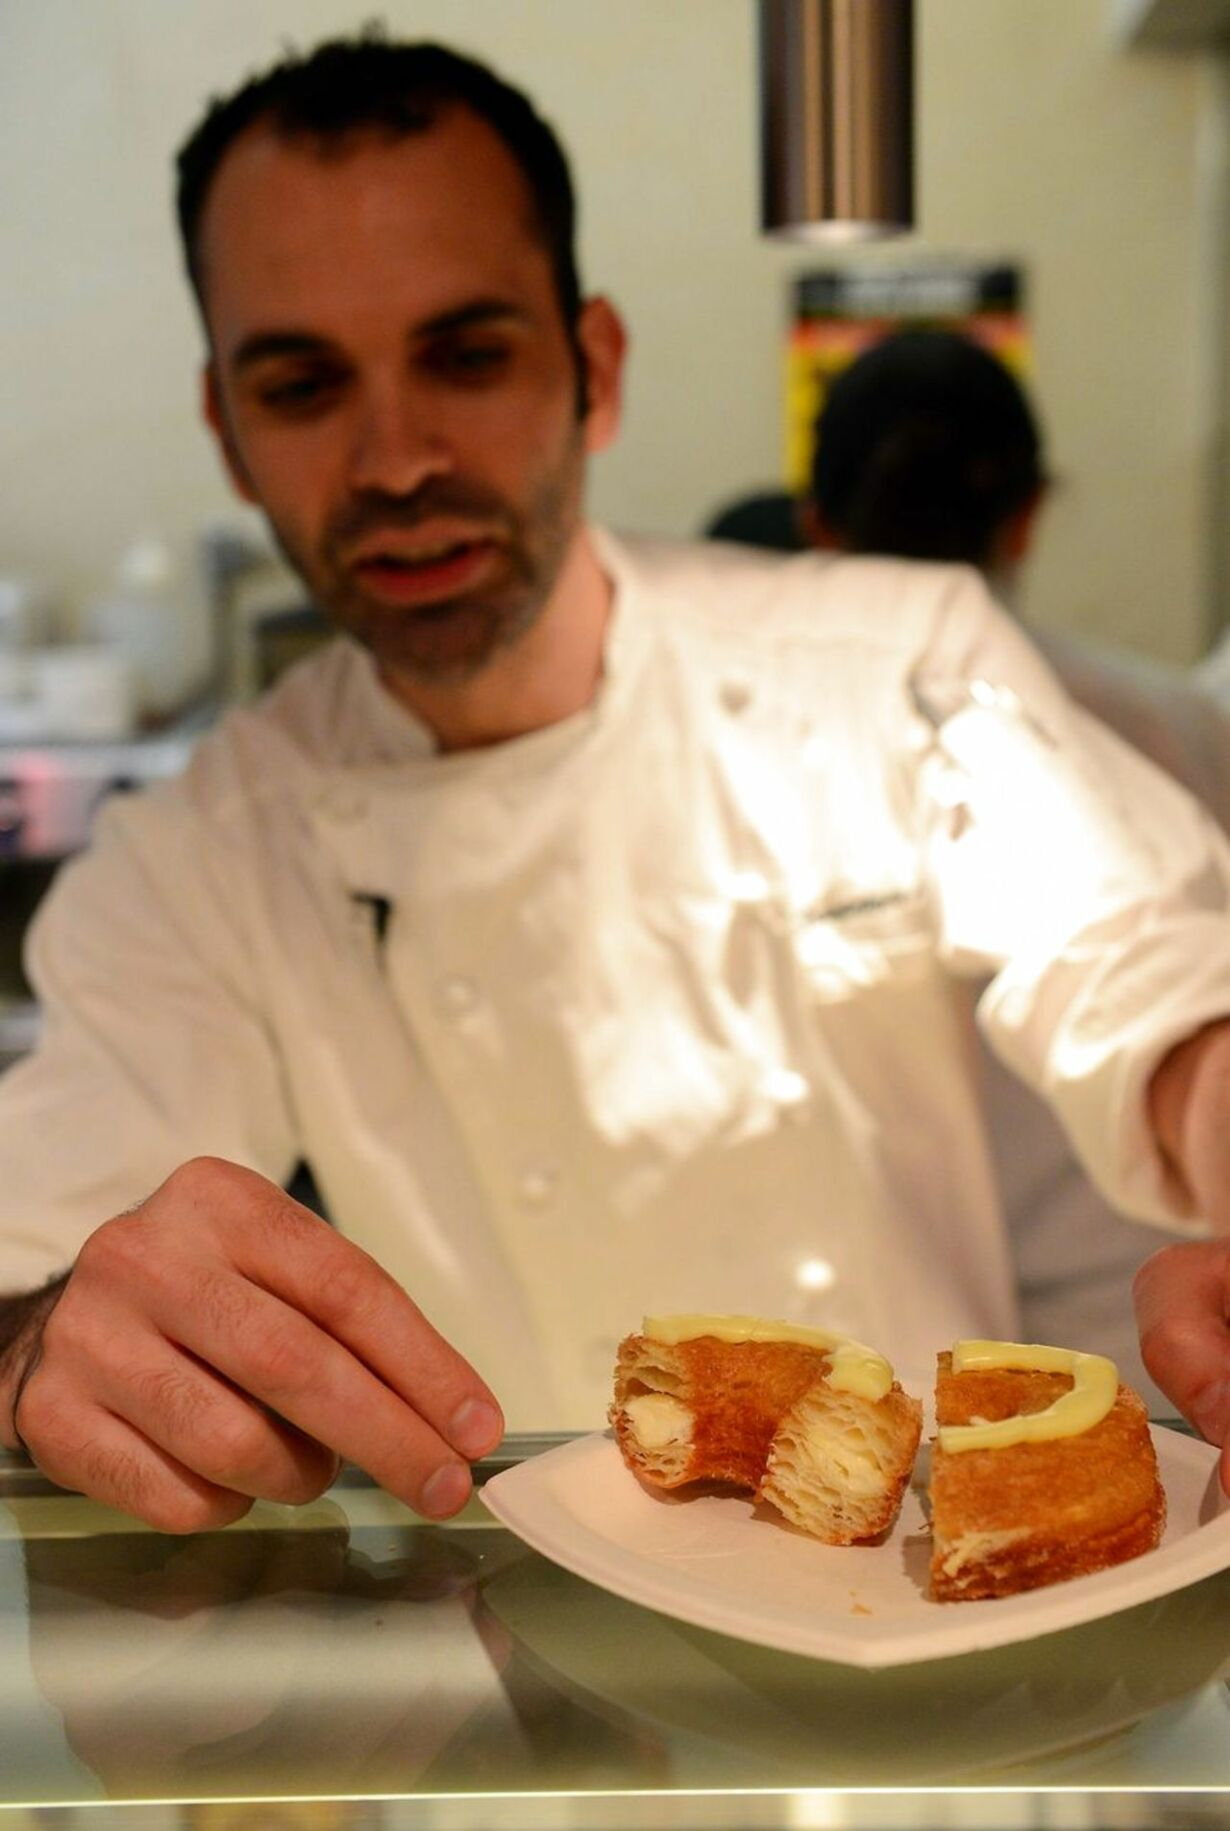 DOUNIAMAG-US-FRANCE-GASTRONOMY-PASTRY-CRONUTS